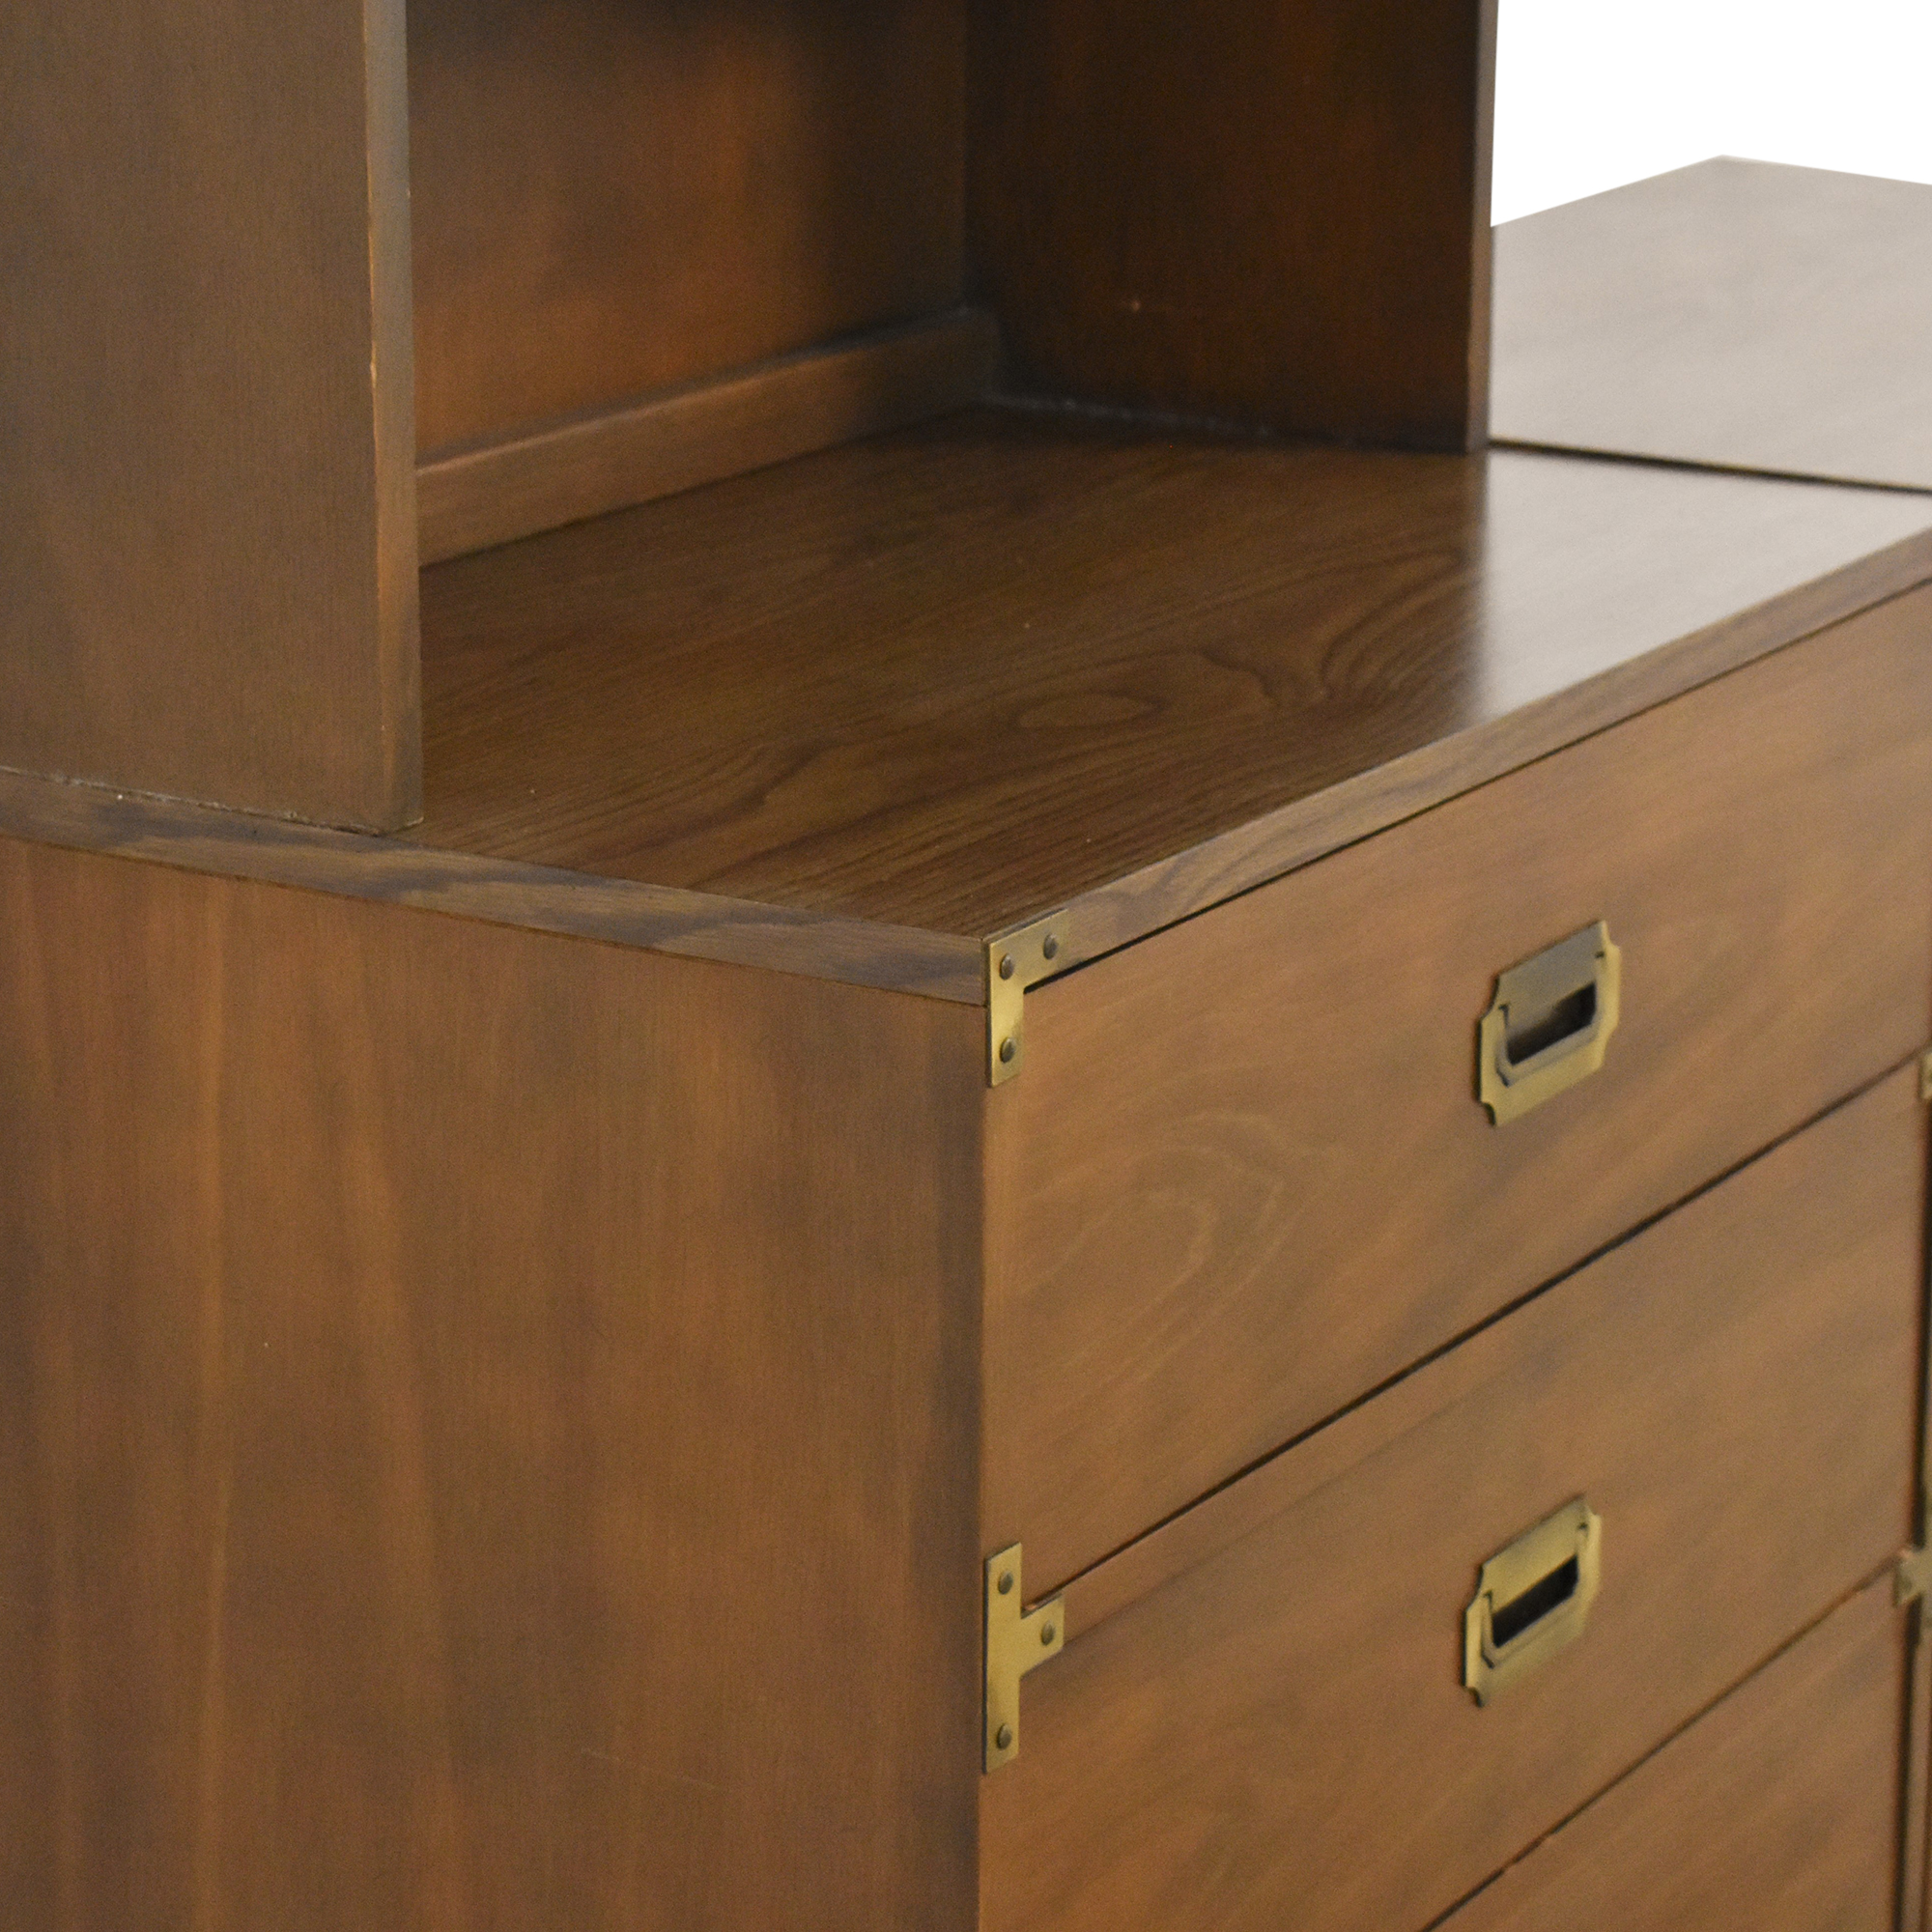 Drexel Drexel Firstmate Three Drawer Dressers with Hutch